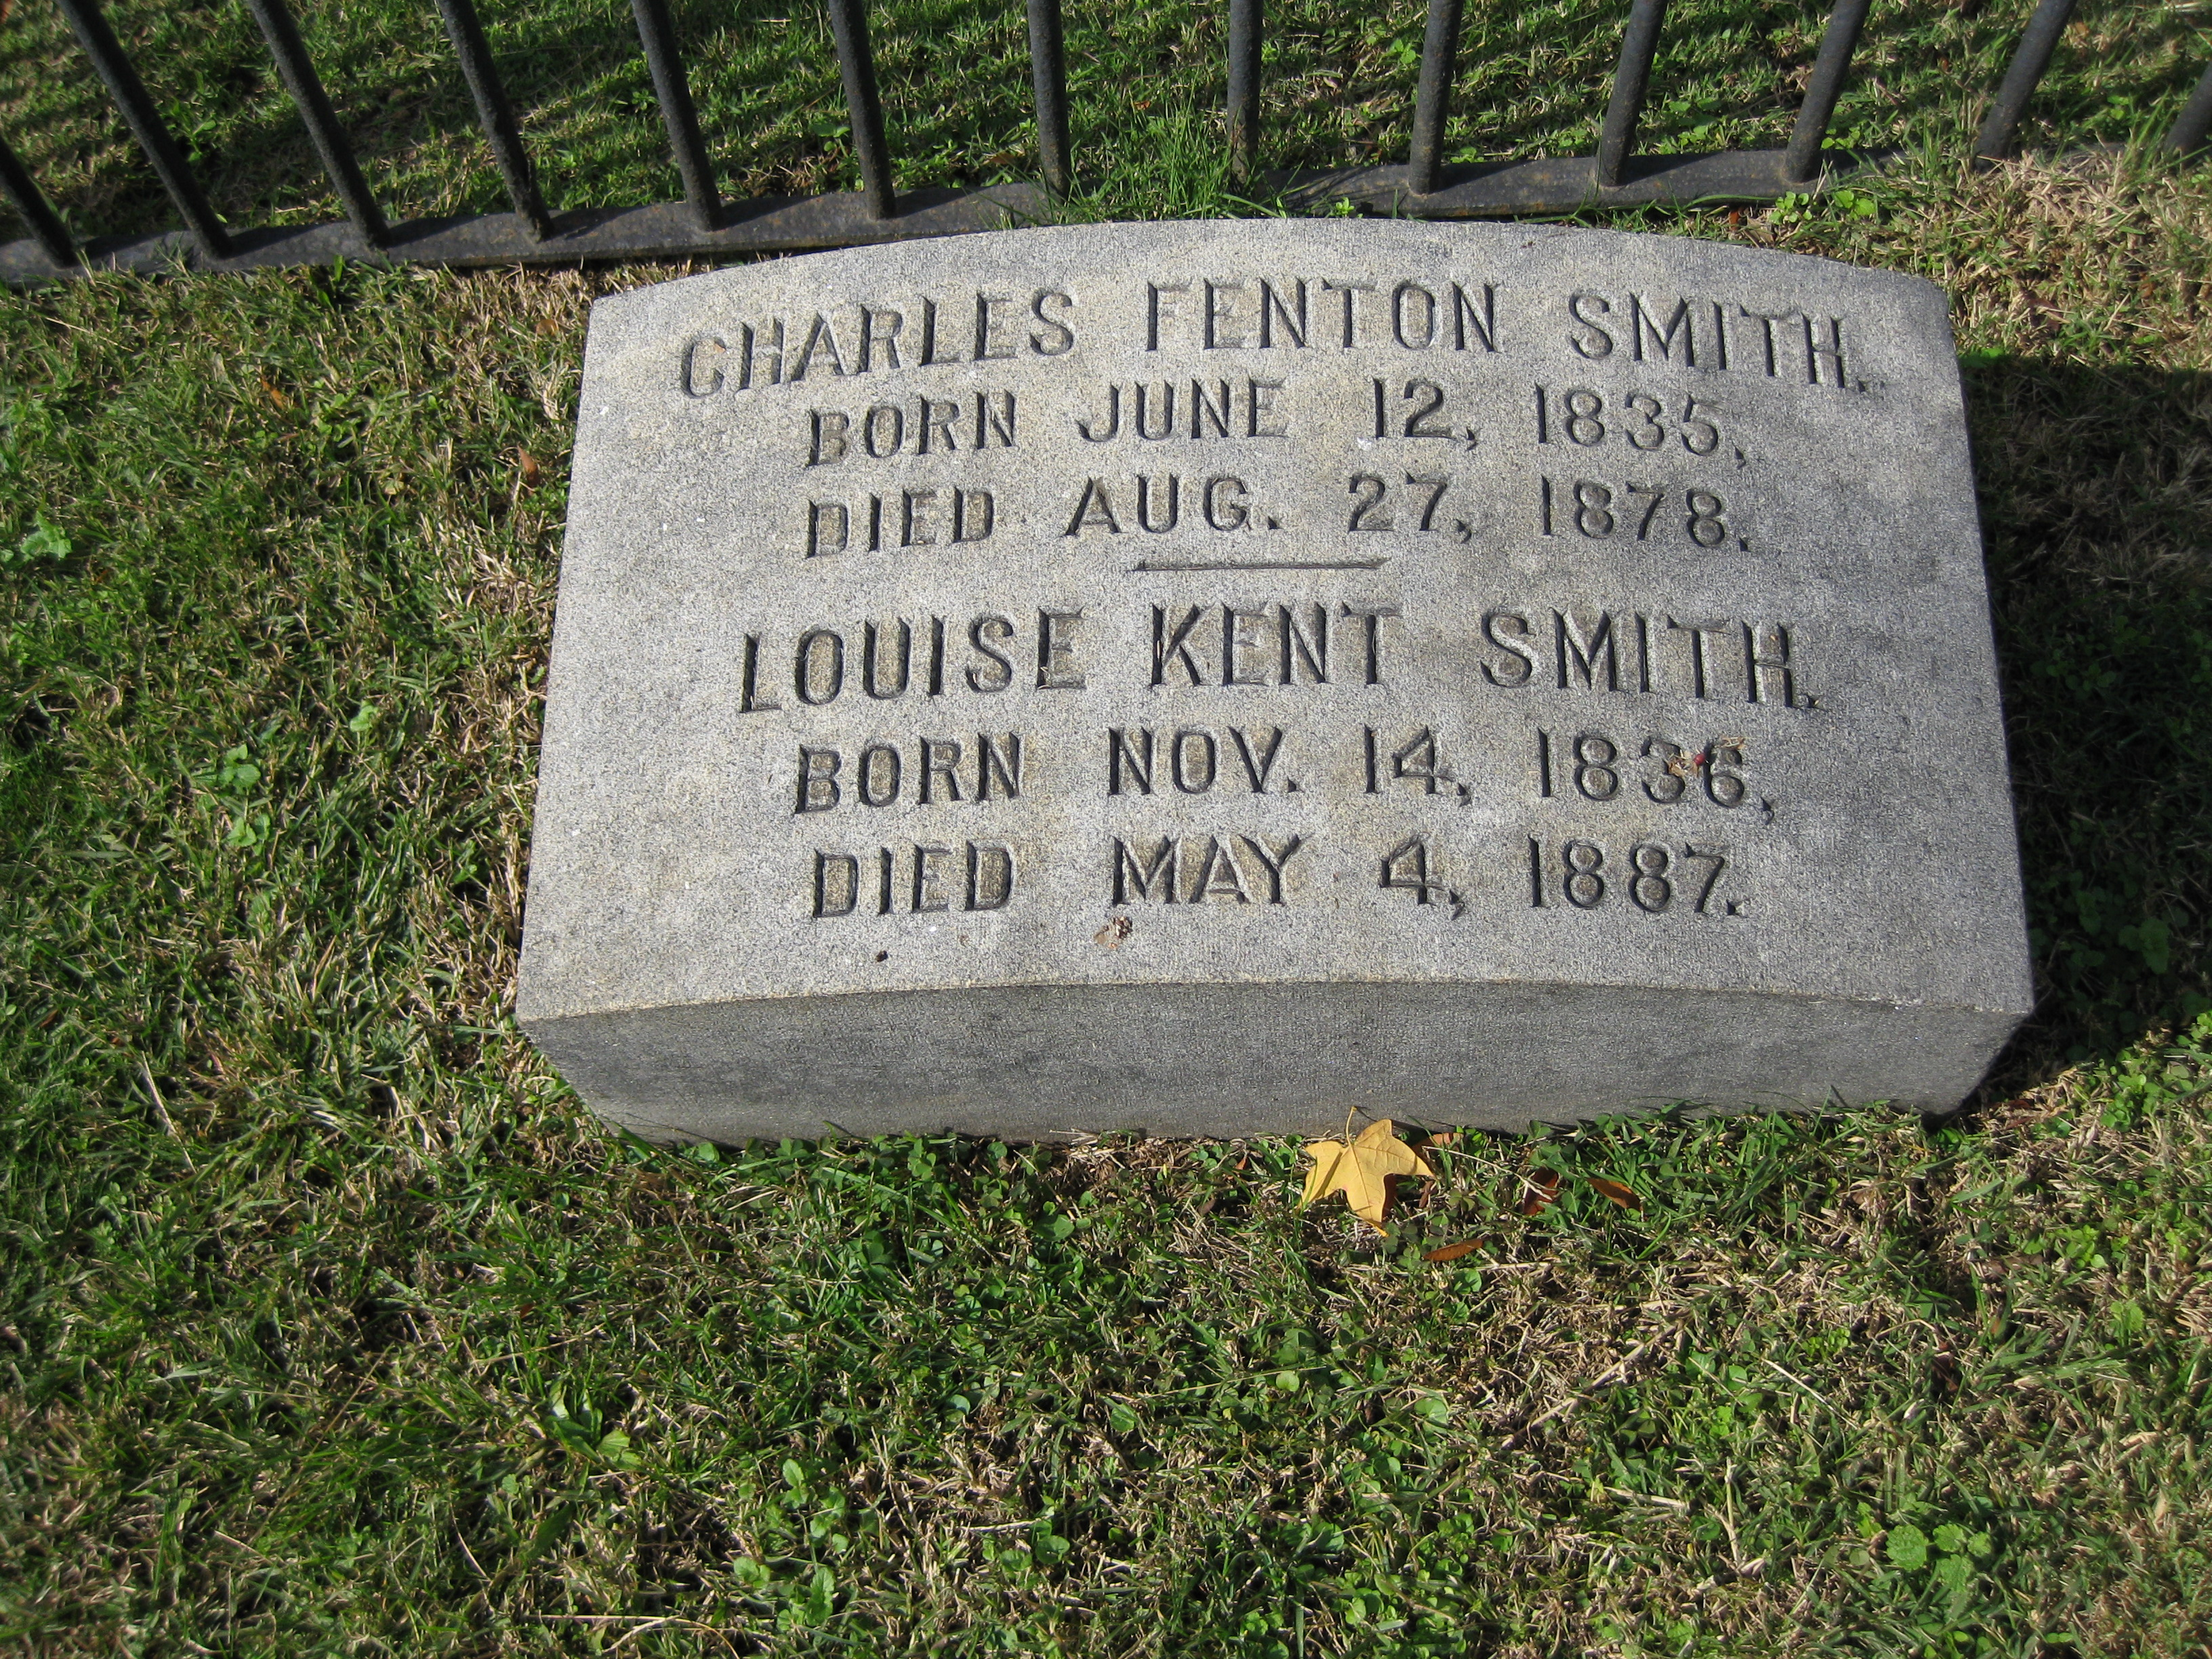 Louise Maud Kent Smith